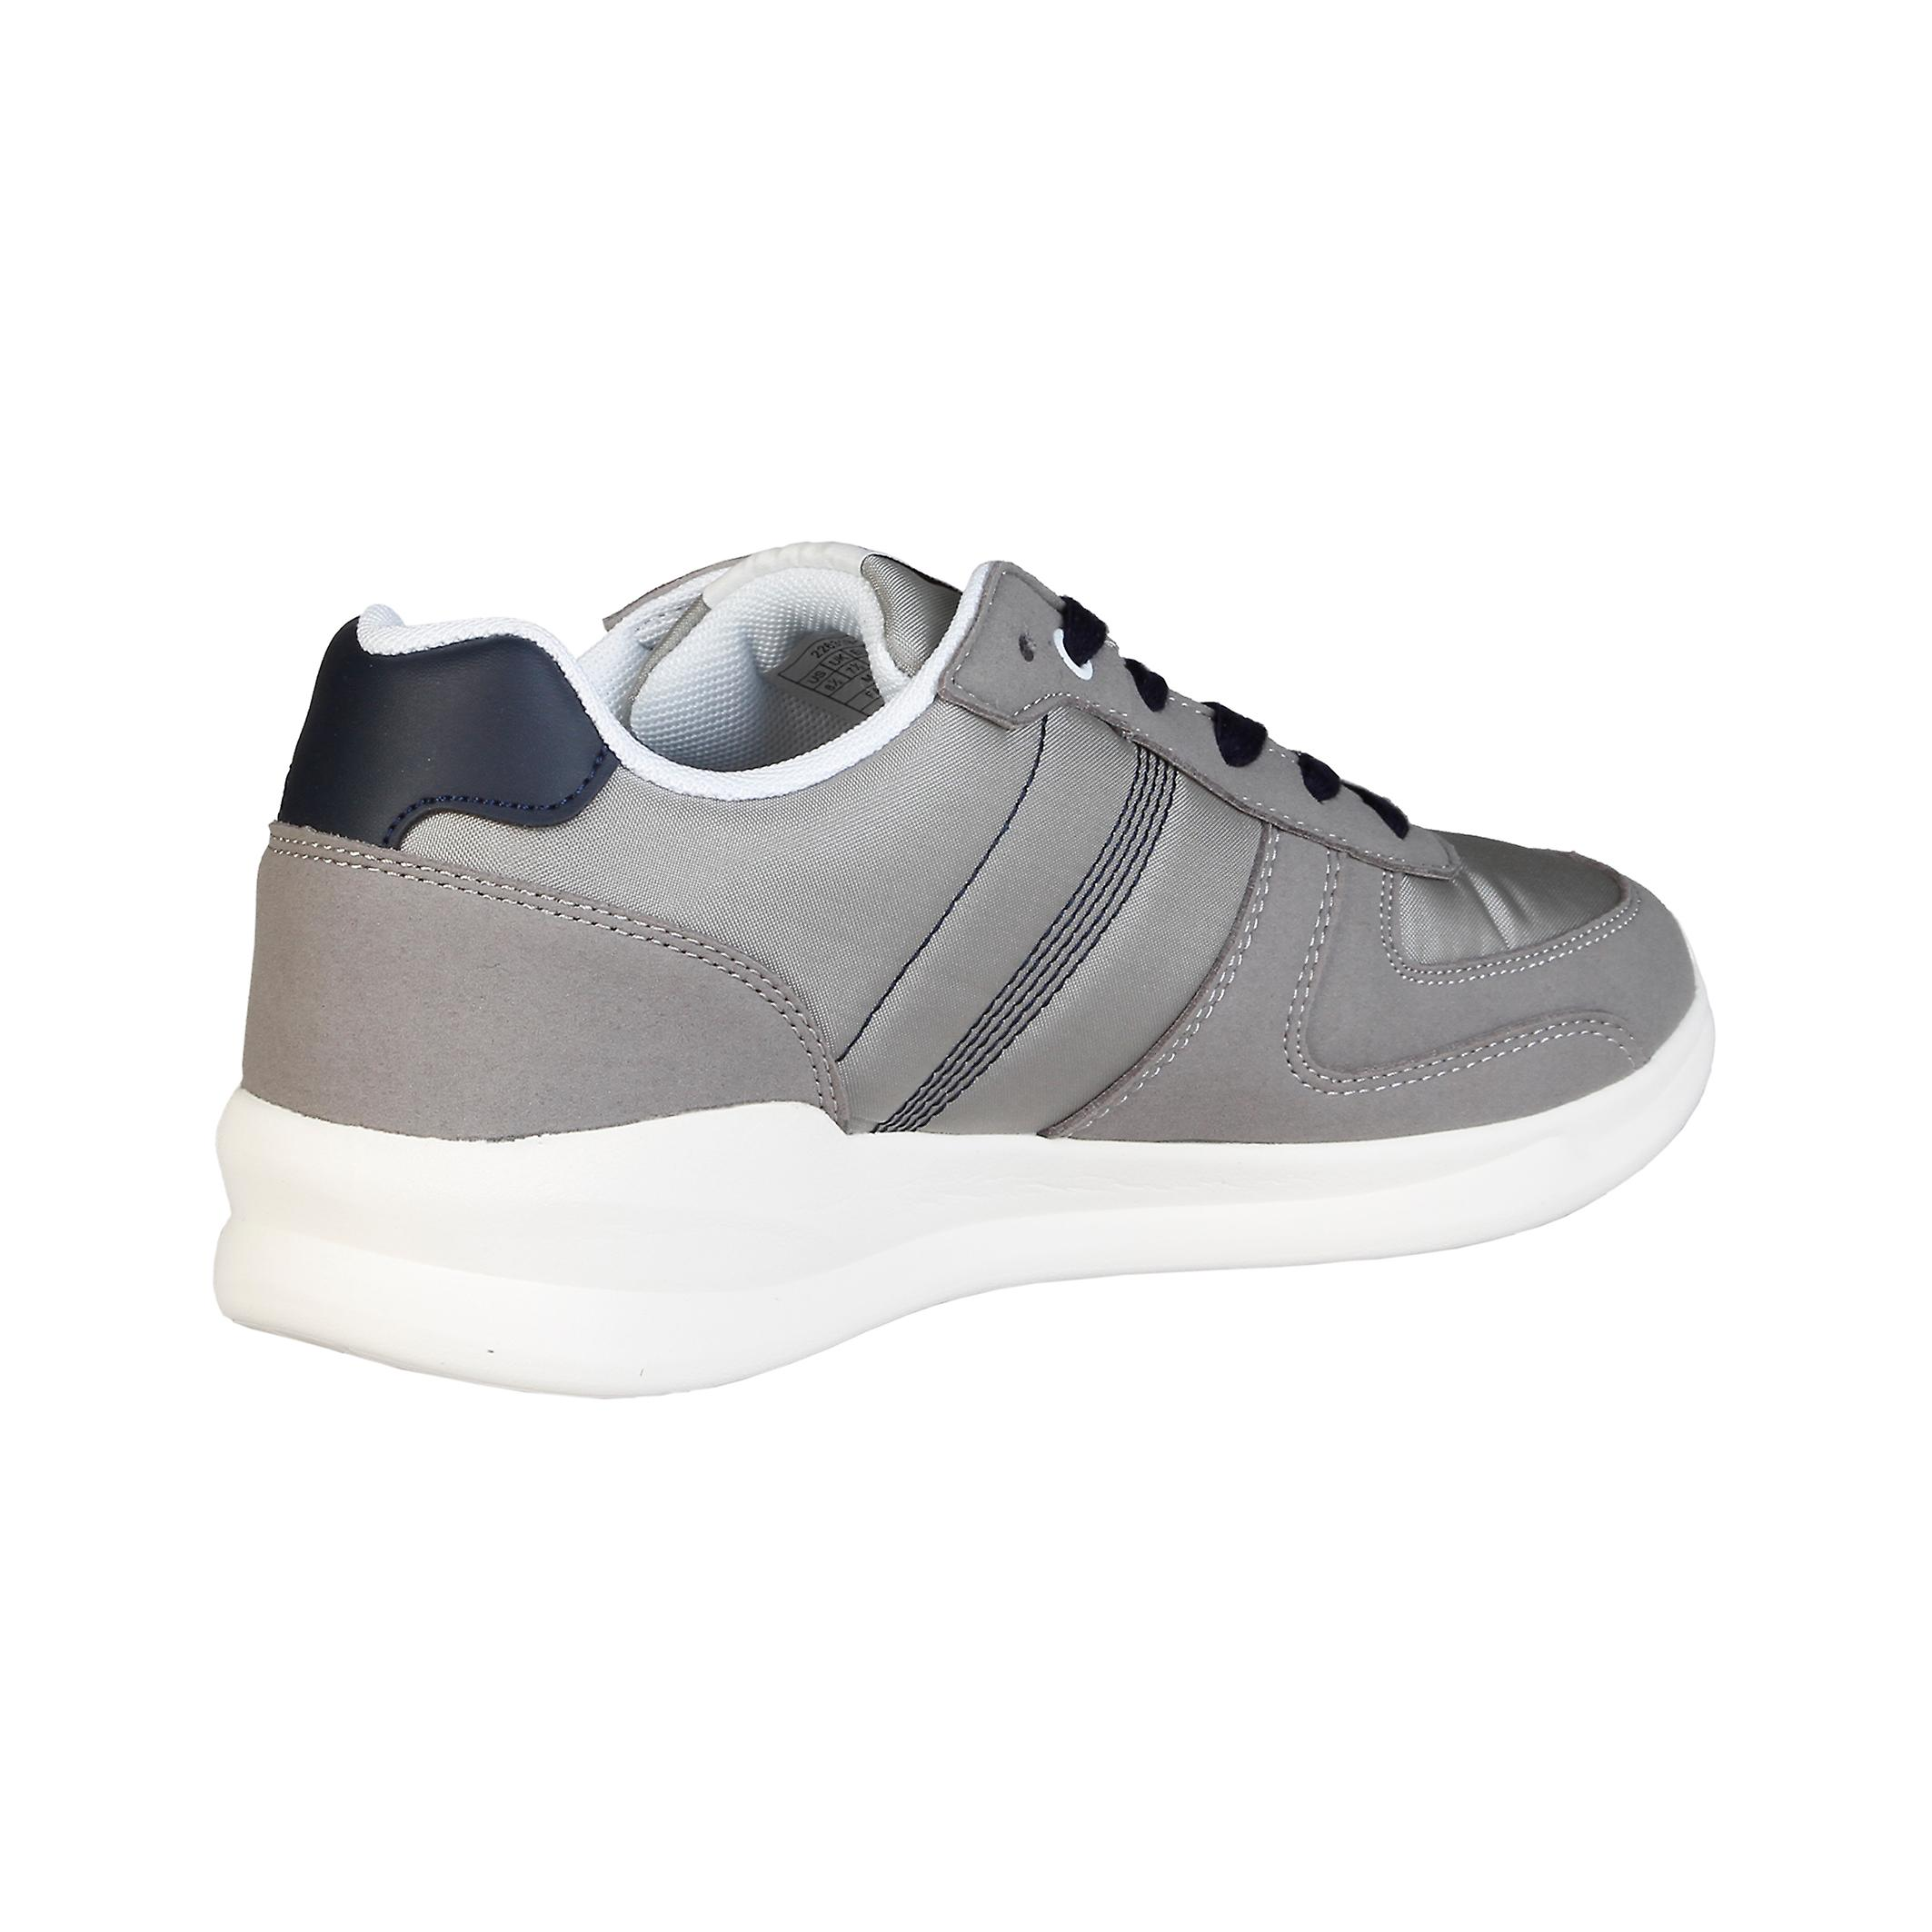 Levis Levis Men Sneakers Grey Sneakers f7xq0wP0